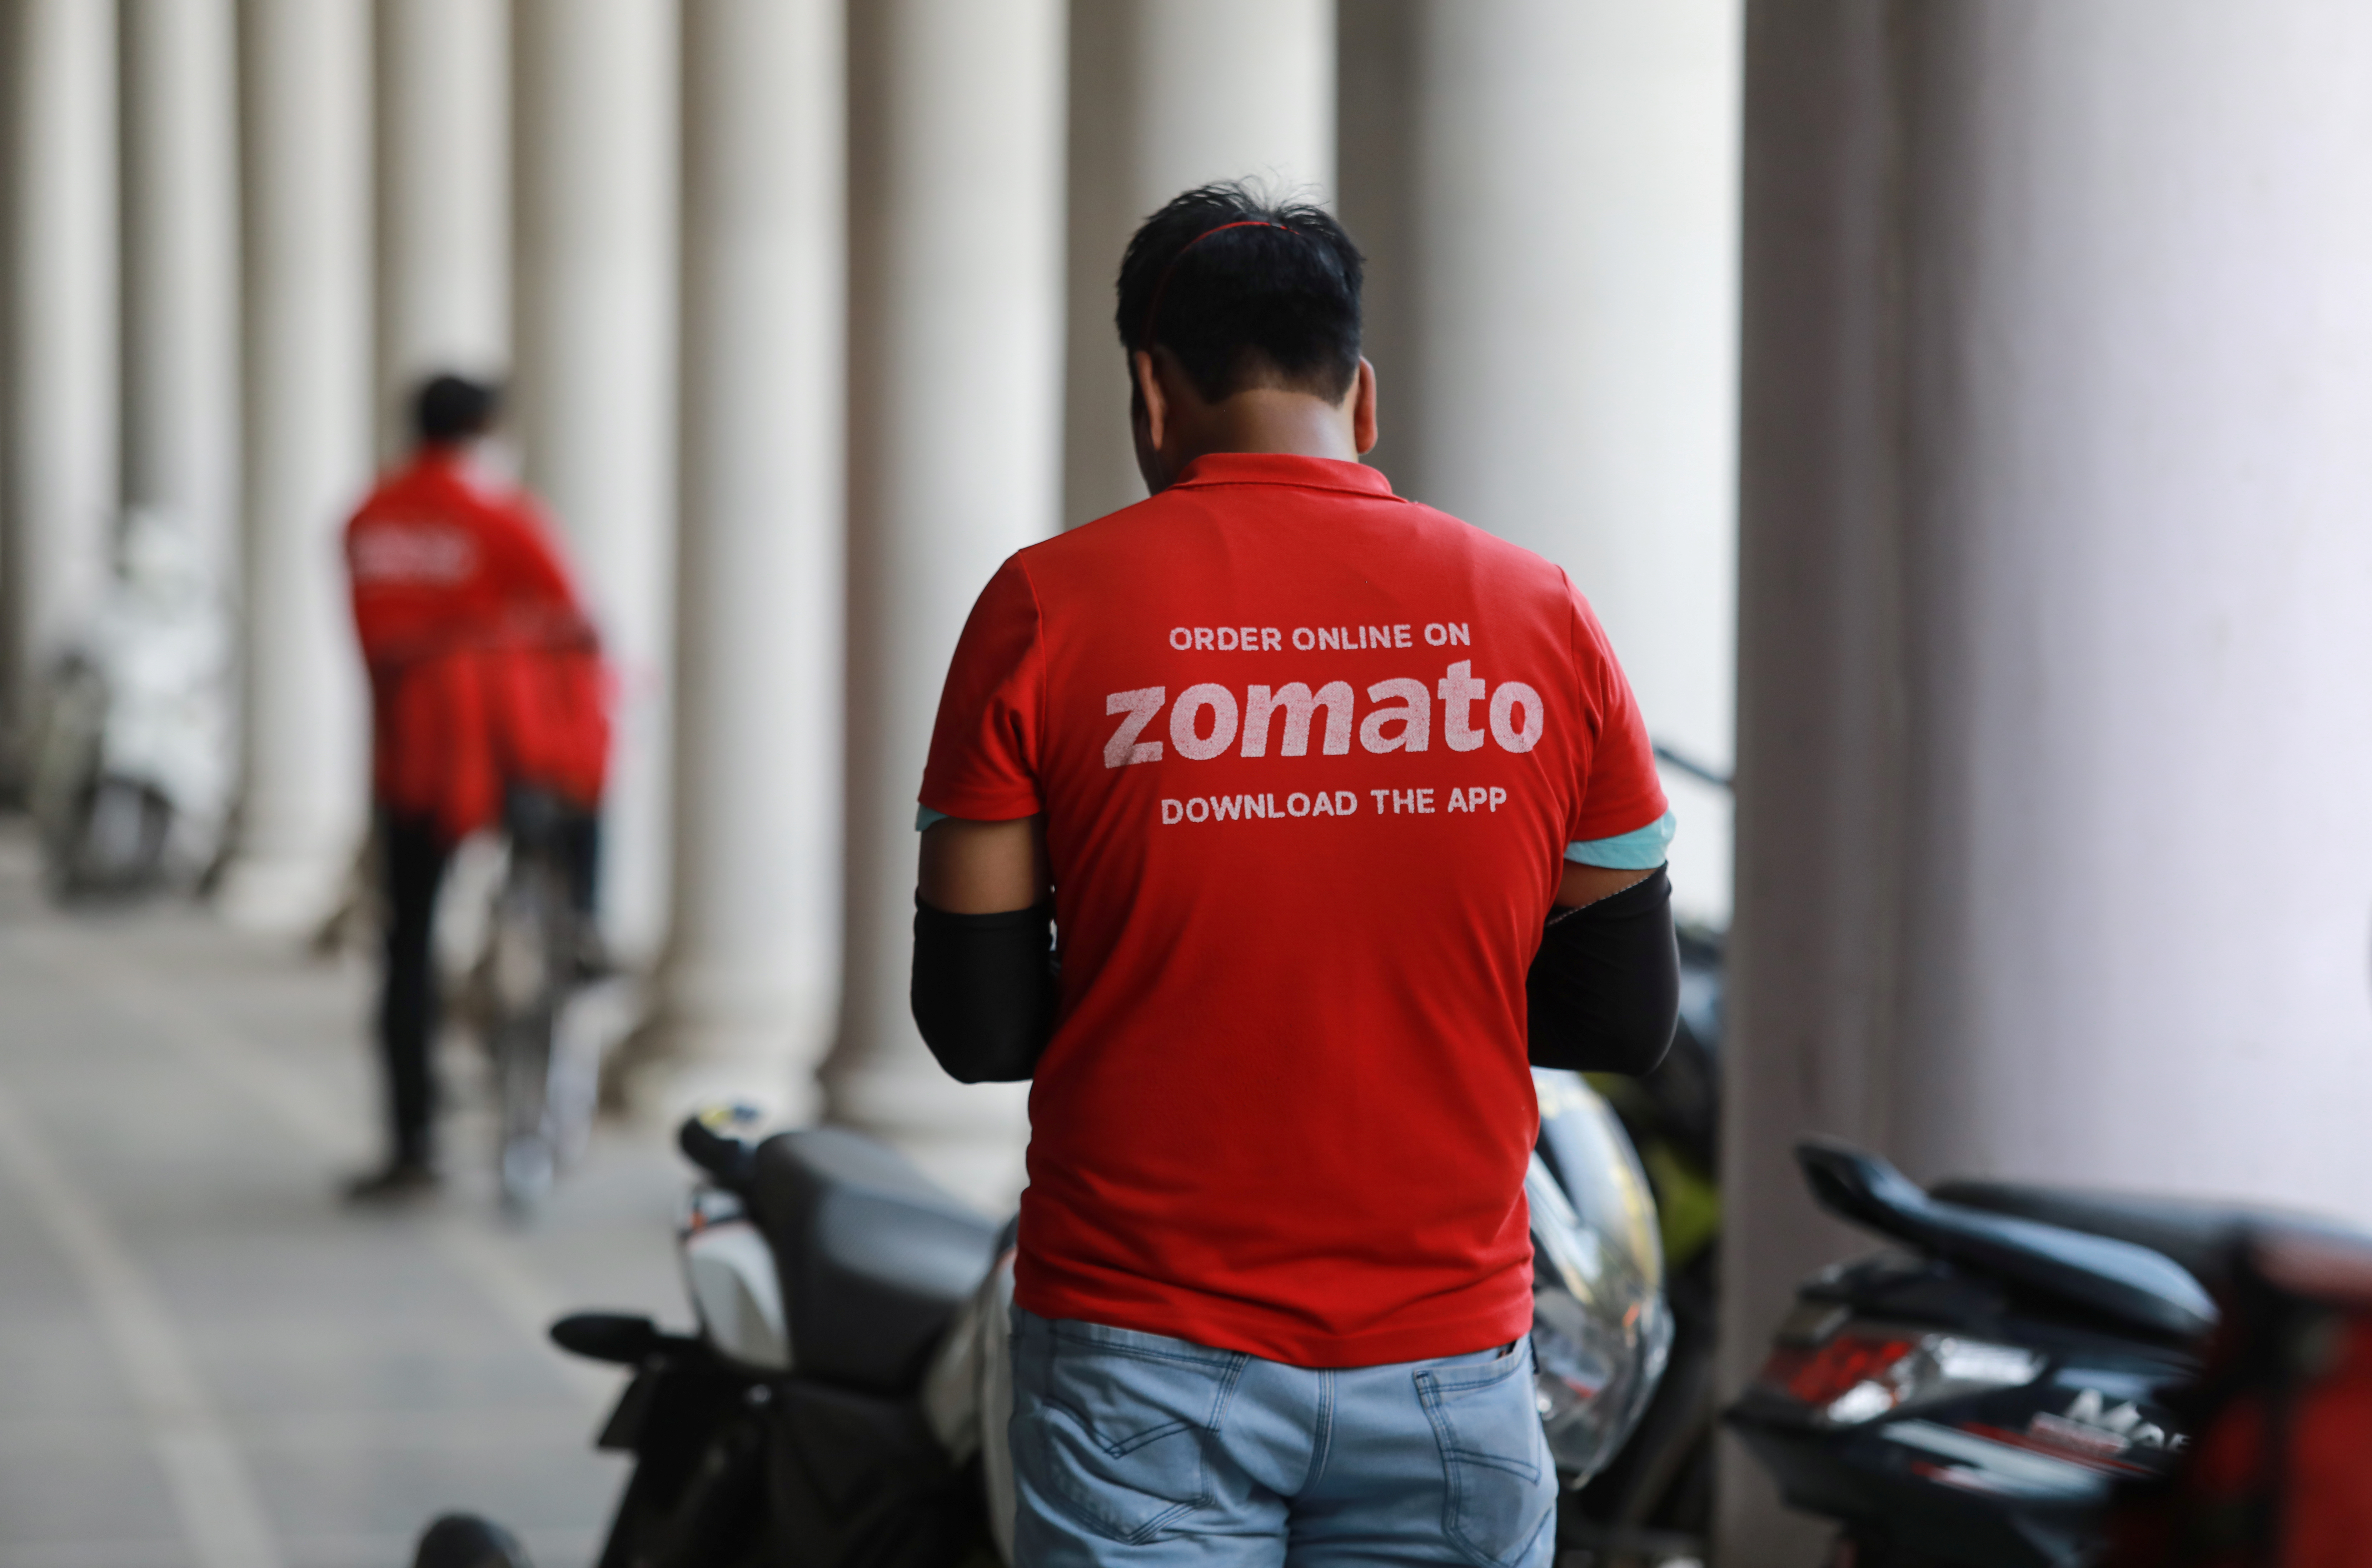 A delivery worker of Zomato, an Indian food-delivery startup, waits to collect an order from a restaurant, during an extended nationwide lockdown to slow the spread of the coronavirus disease (COVID-19), in New Delhi, India, May 21, 2020. REUTERS/Anushree Fadnavis/File Photo